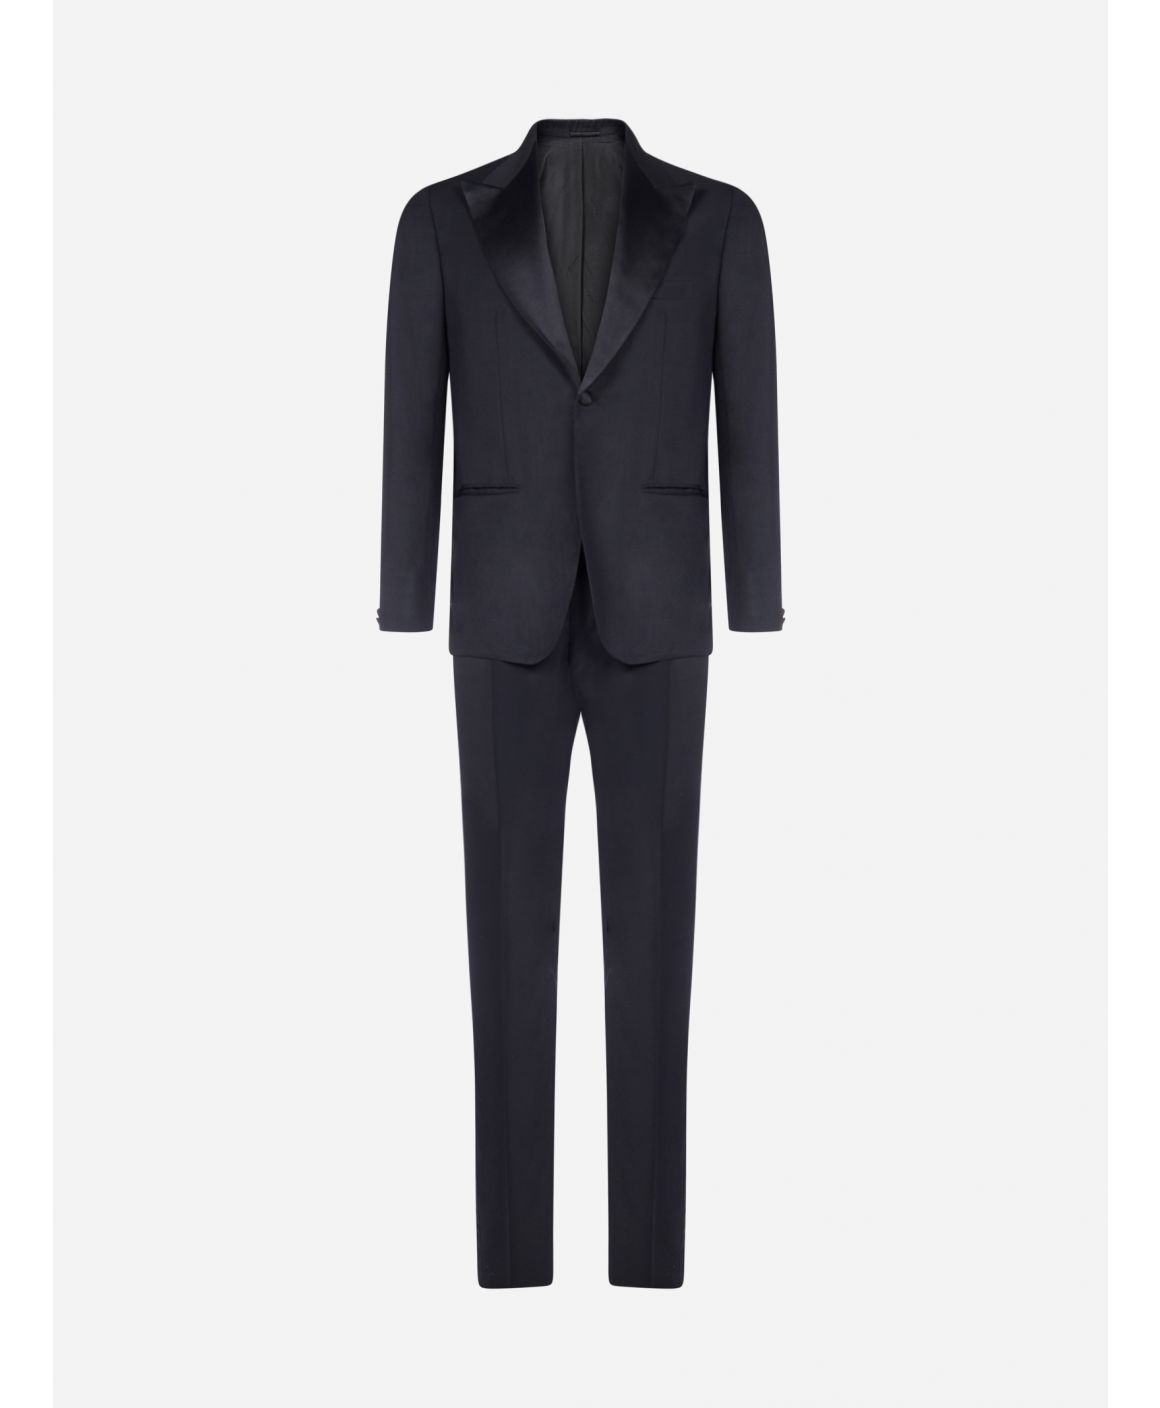 2-pieces tailored wool tuxedo suit